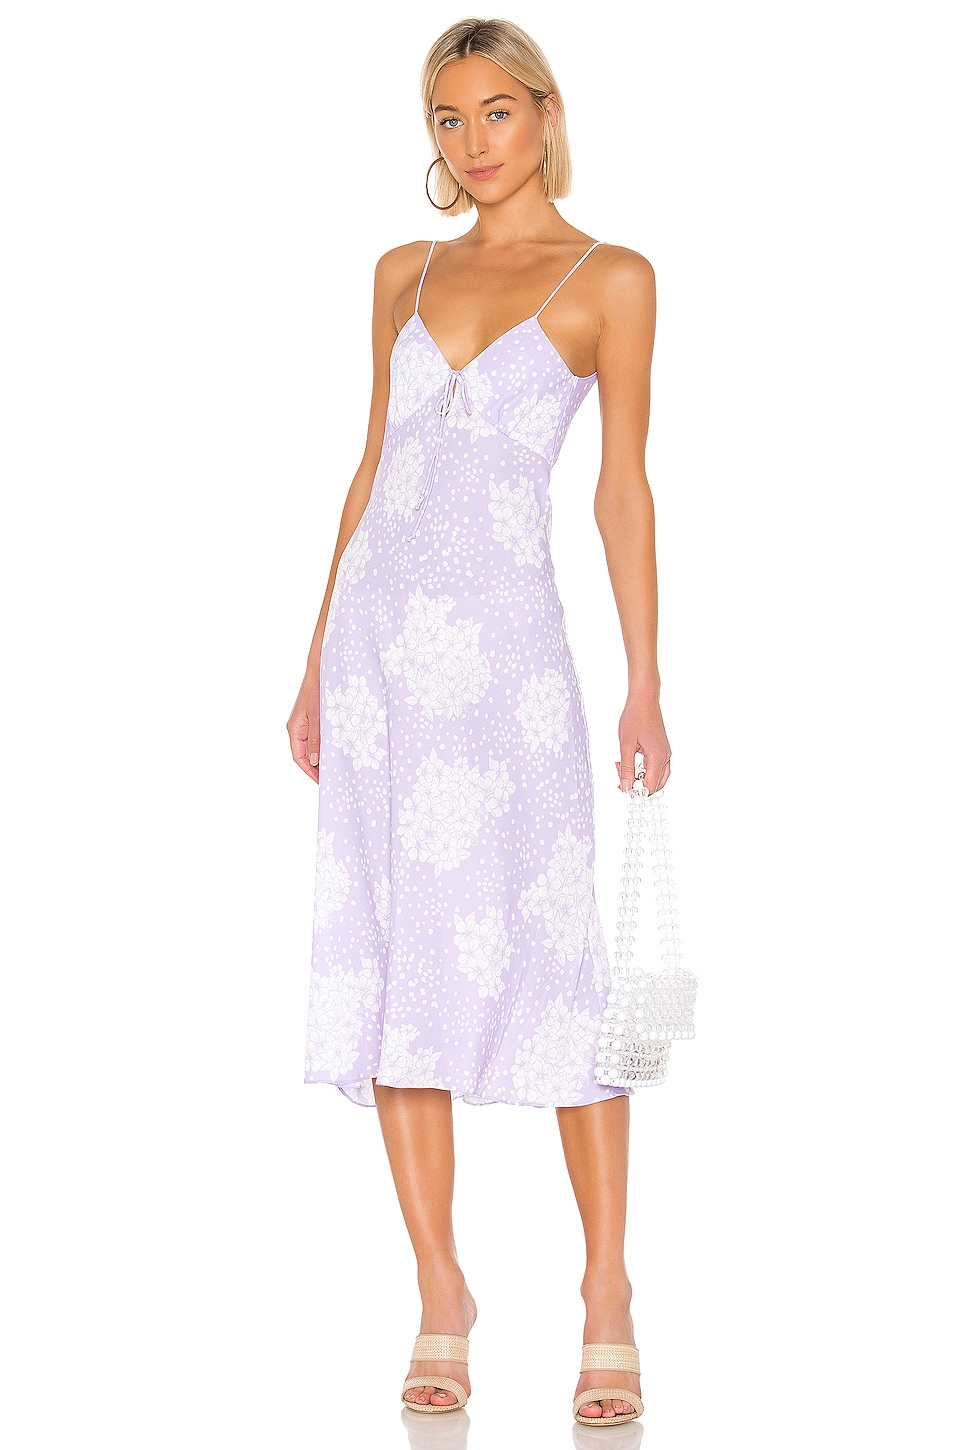 Endless Summer Suki Slip Dress in Vintage Lavender Hydrangea